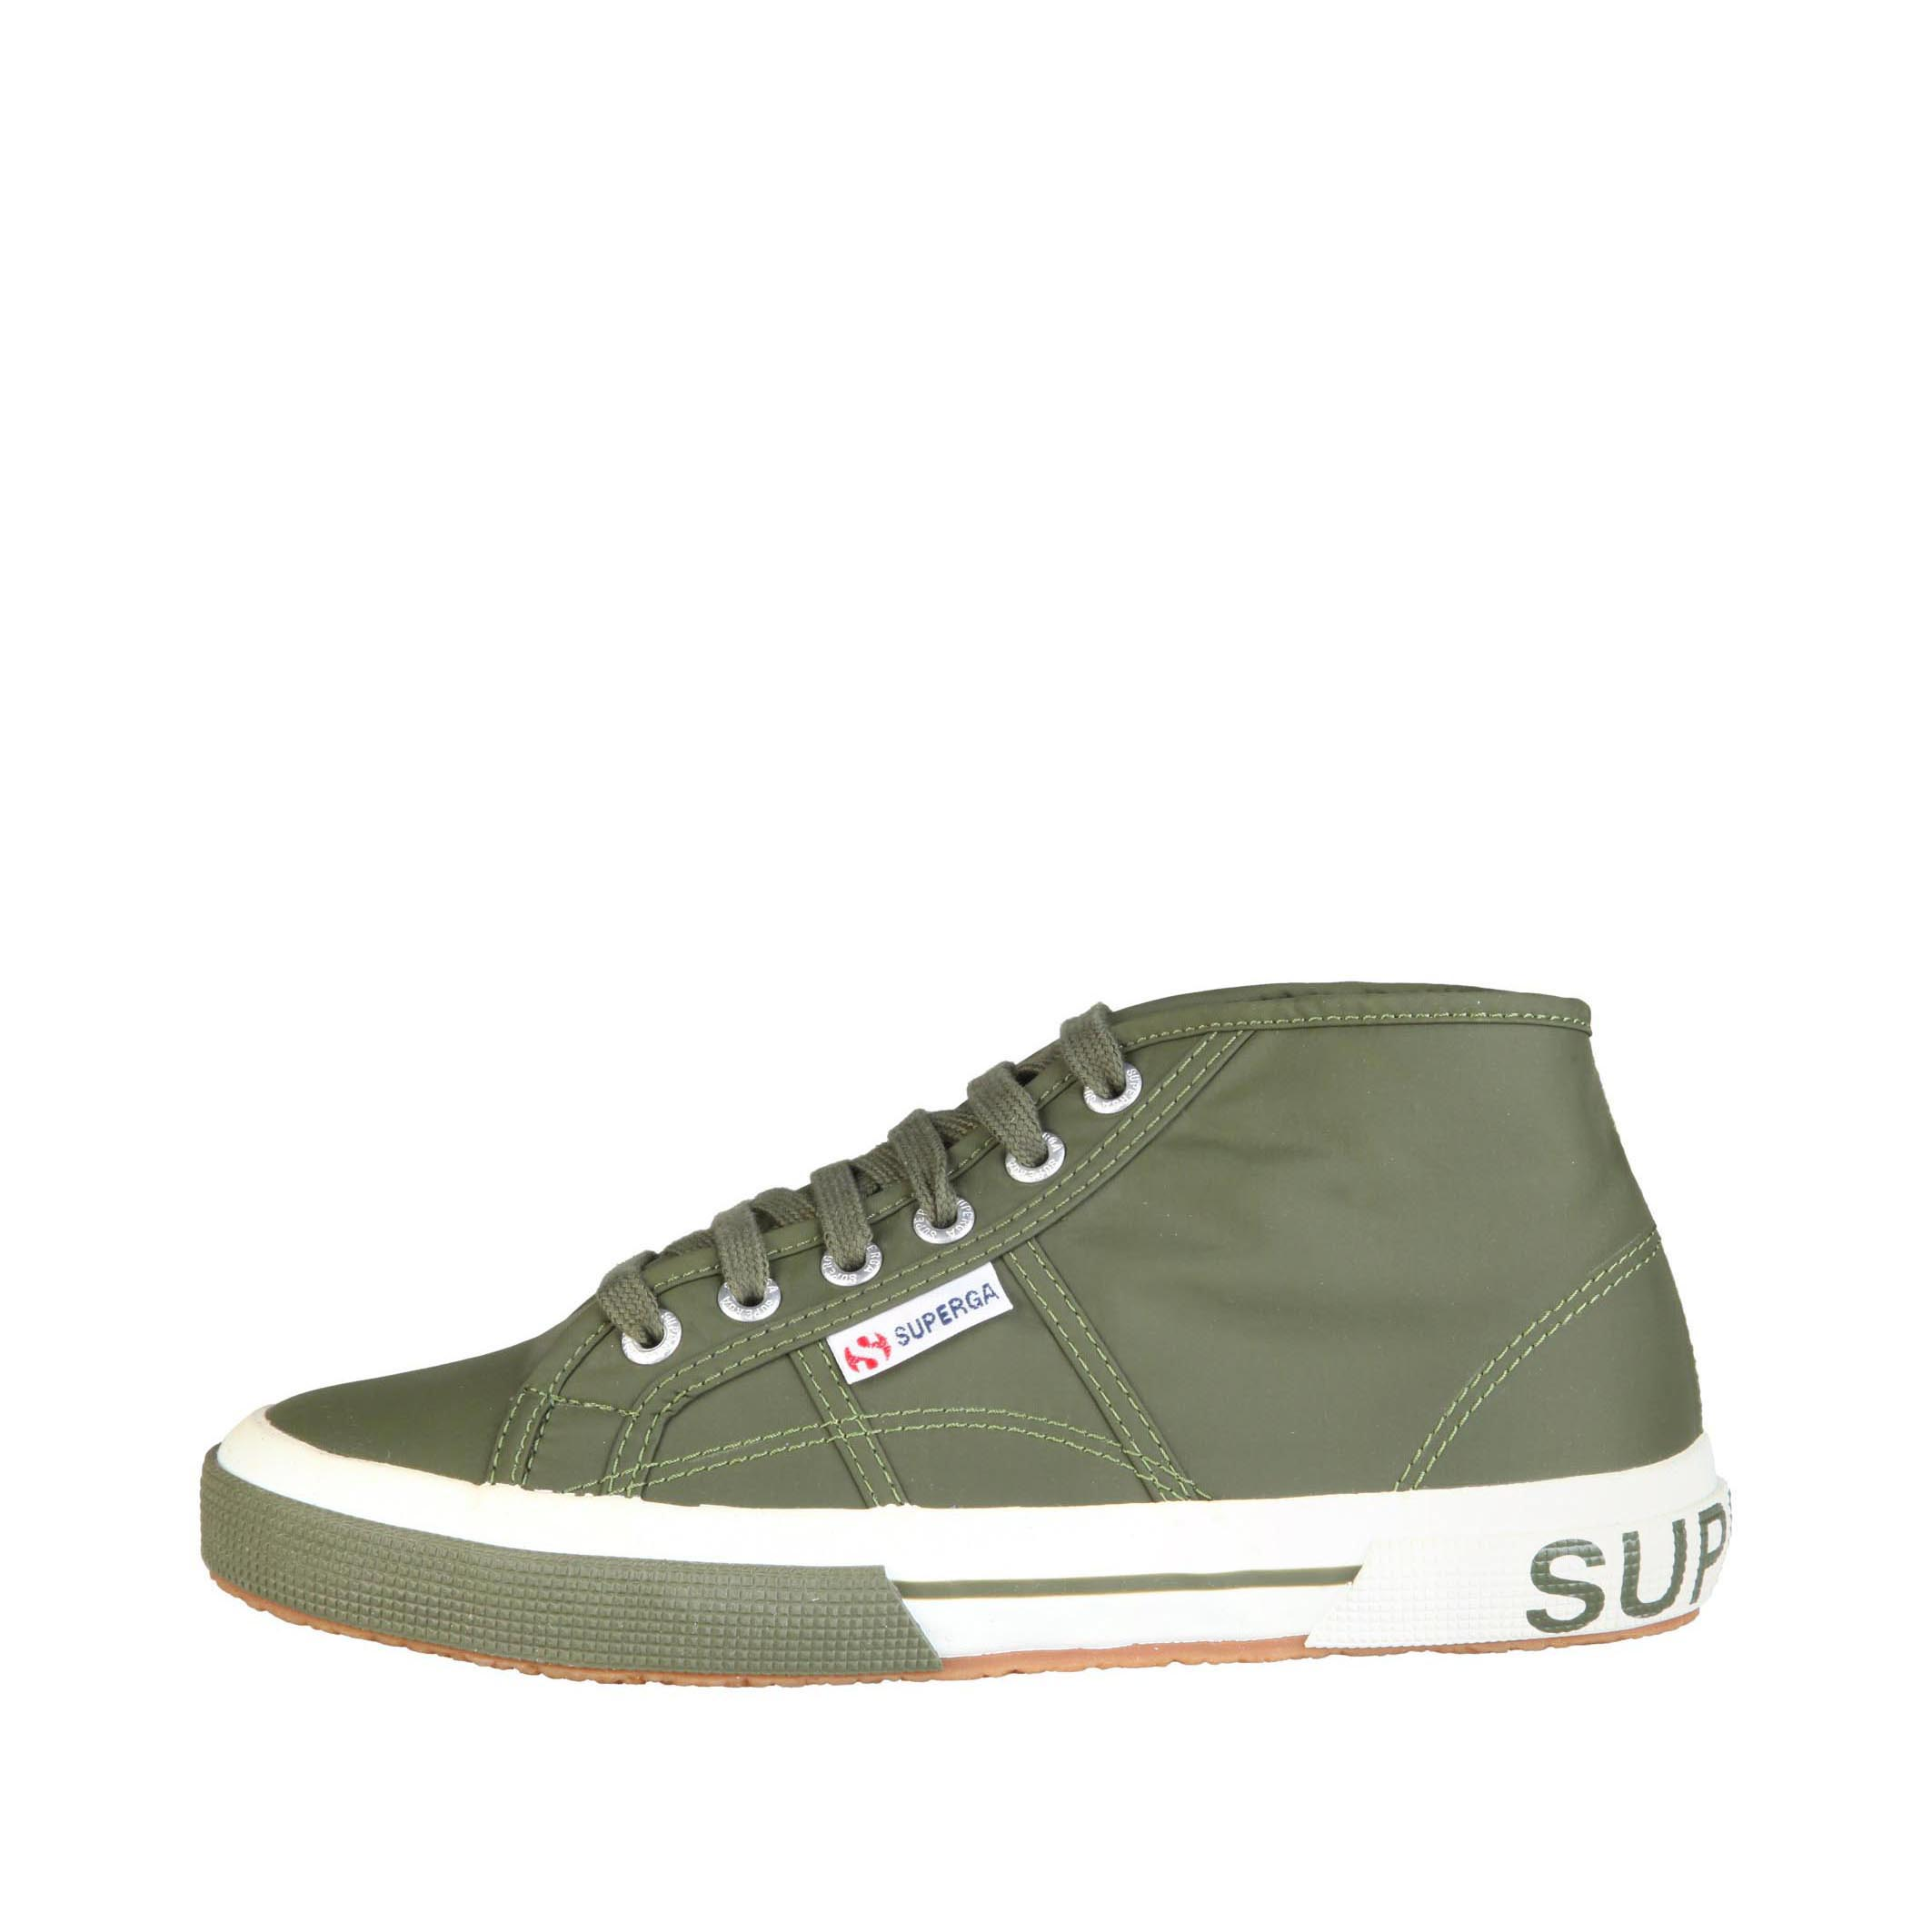 Superga S009zn0_2795_a46_militaryflower Sneakers